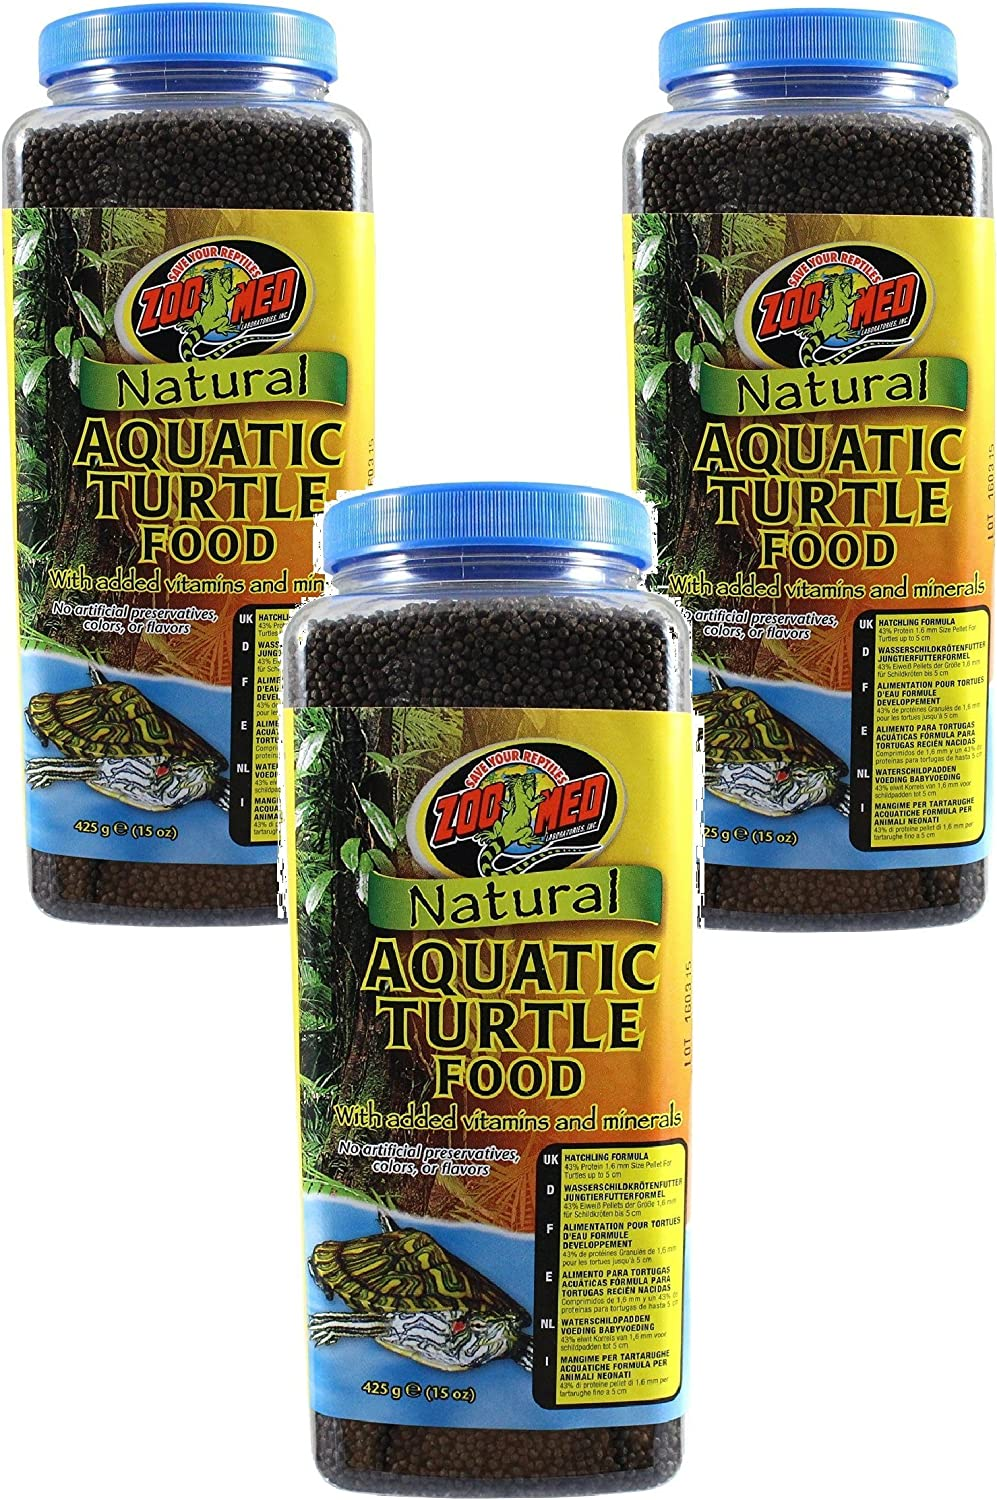 (3 Pack) Zoo Med Natural Aquatic Turtle Food (15 Ounce Per Pack)